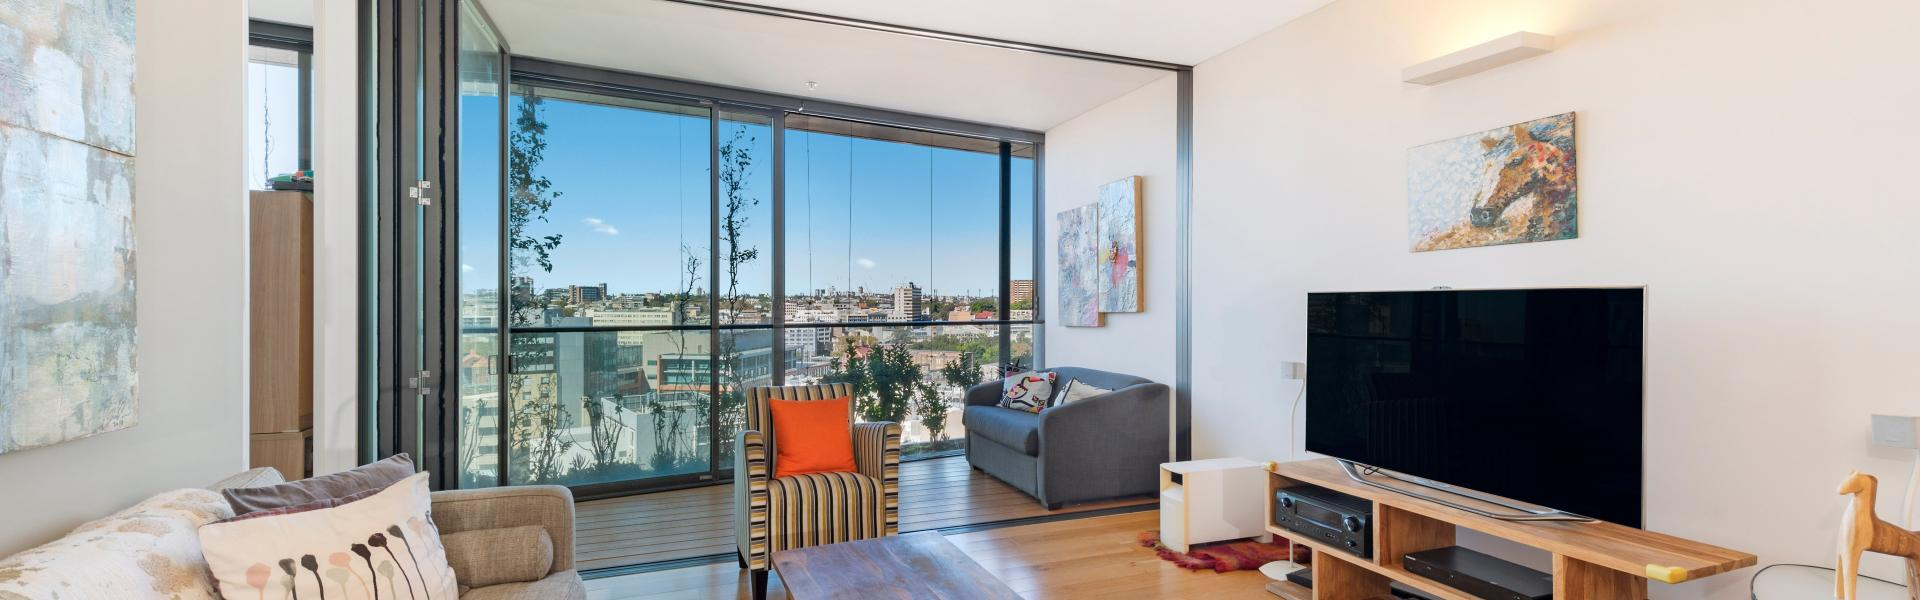 Prestigious 2 Bedroom Apartment with Extensive Views to  the City